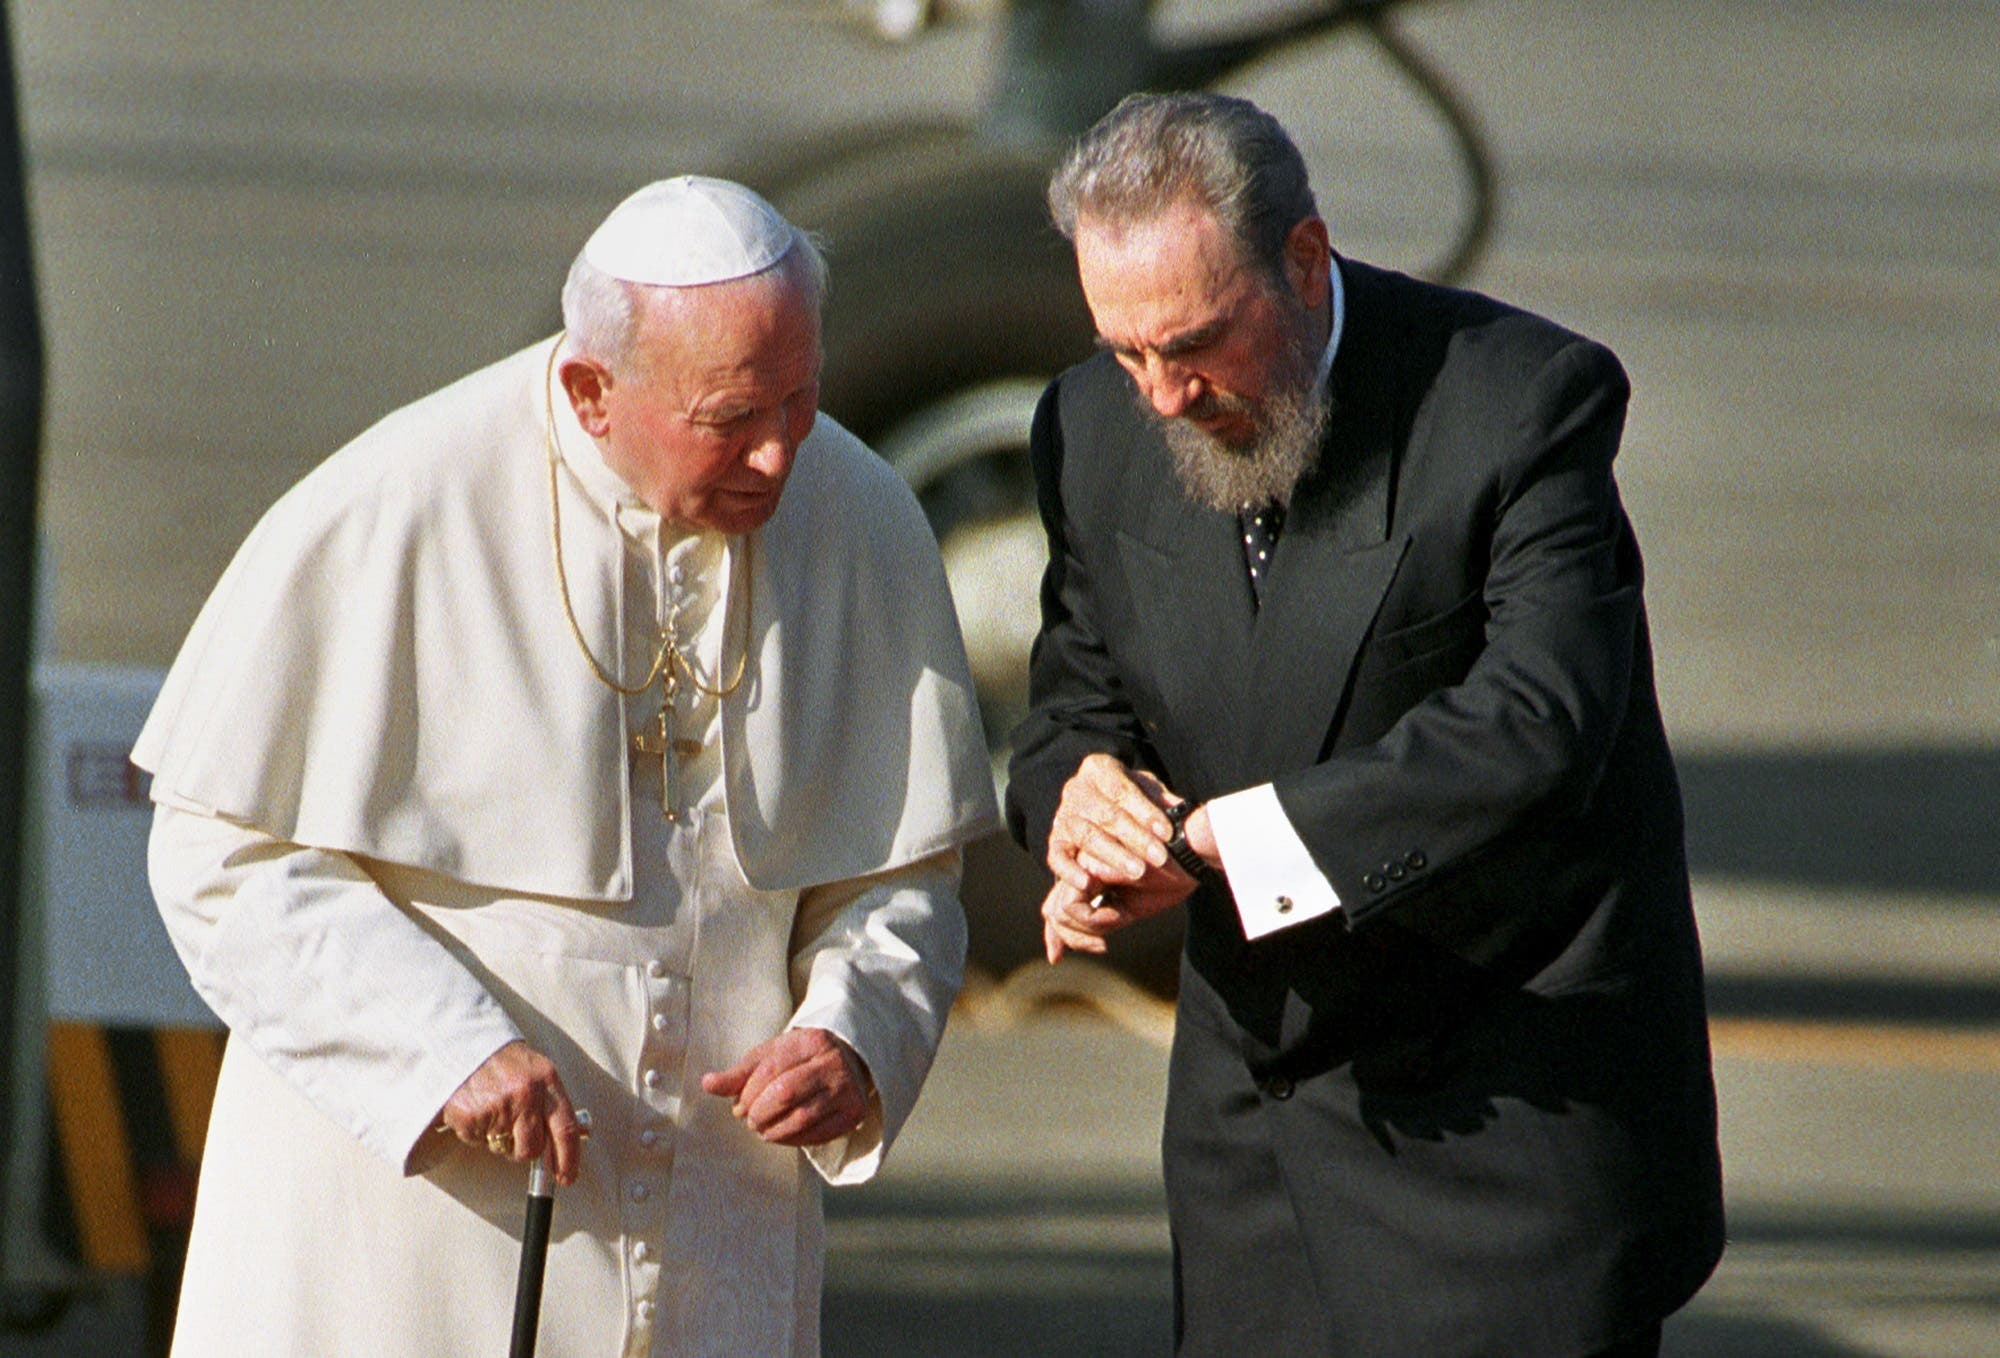 Cuban President Fidel Castro, right, and Pope John Paul II are seen during a welcoming ceremony in Havana, Cuba in this file photo from Jan. 21, 1998. (AP)